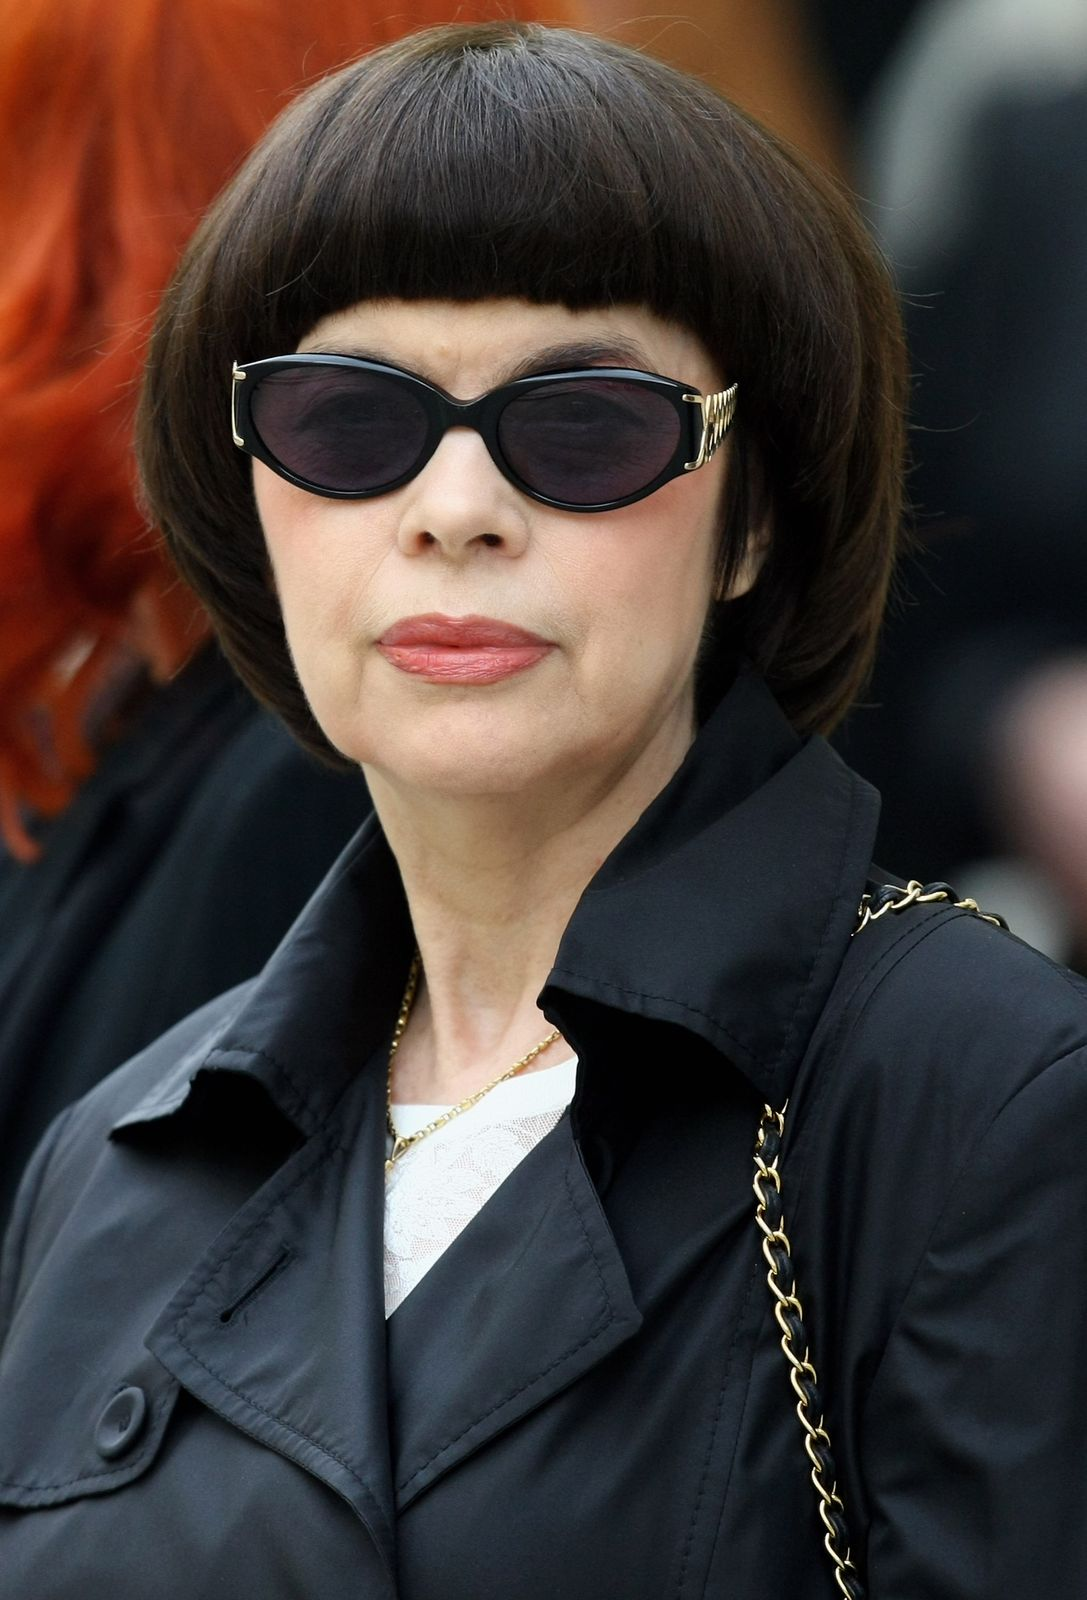 La chanteuse Mireille Mathieu | Photo : Getty Images